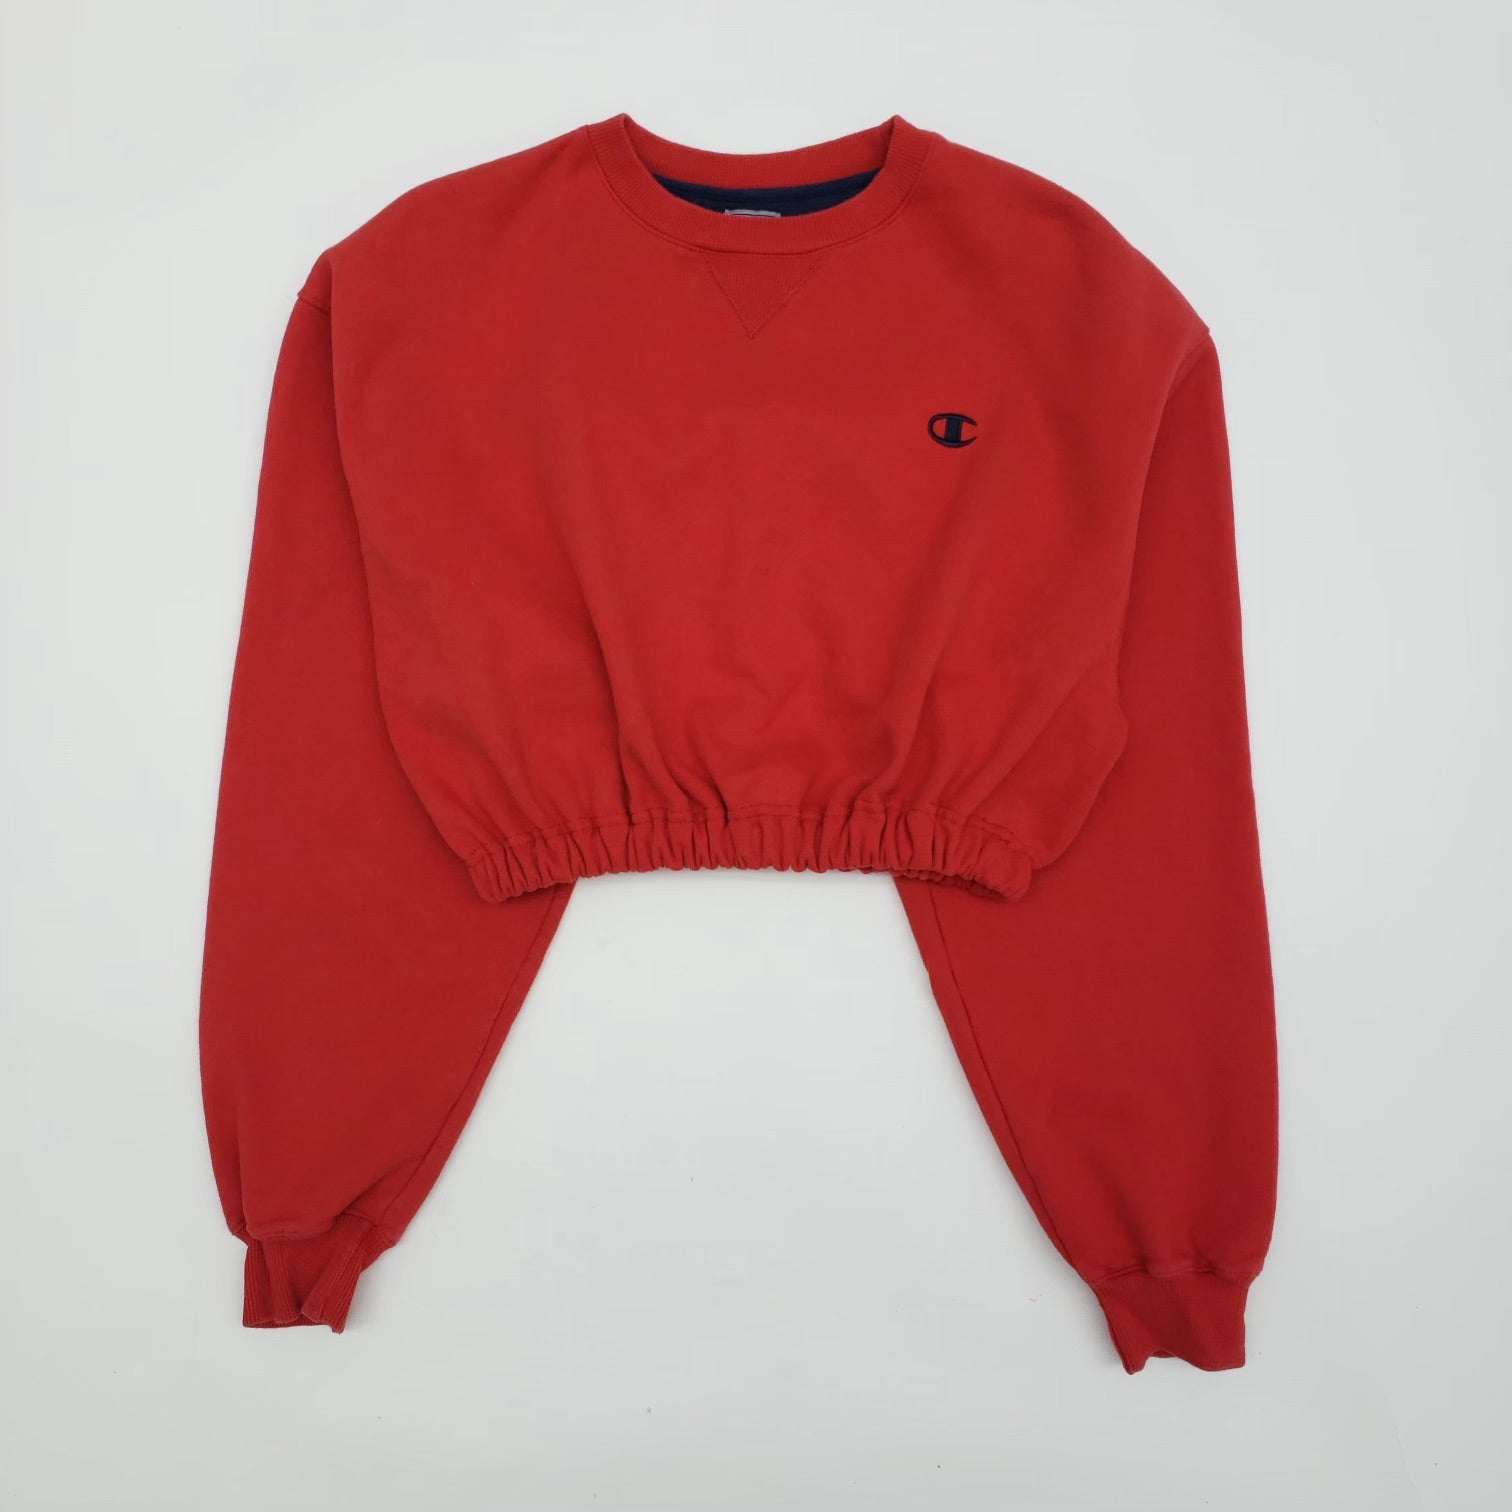 Champion Crop Top Sweatshirt